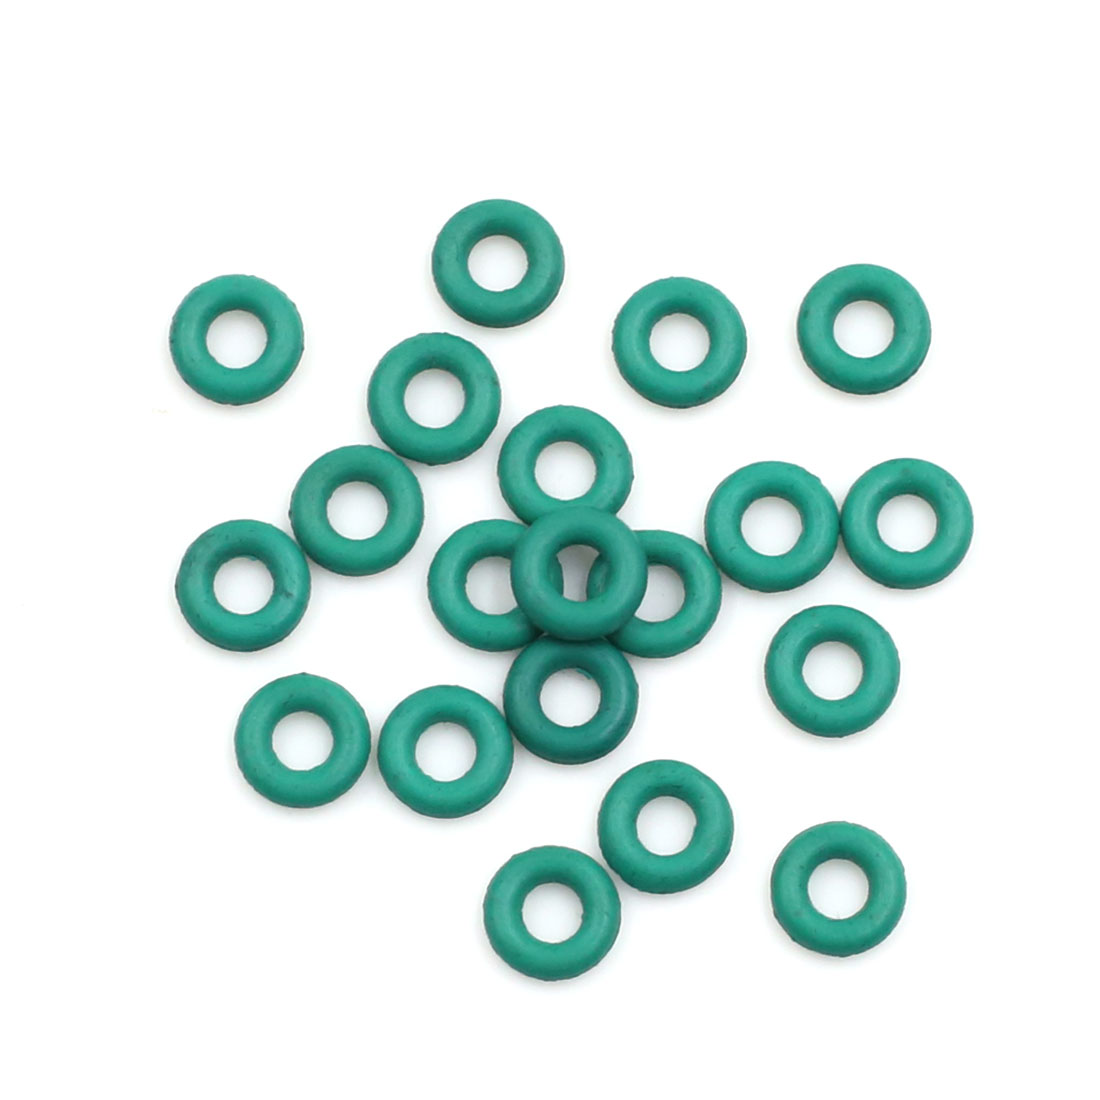 20pcs Green Universal FKM O-Ring Sealing Gasket Washer for Car 7mm x 2mm